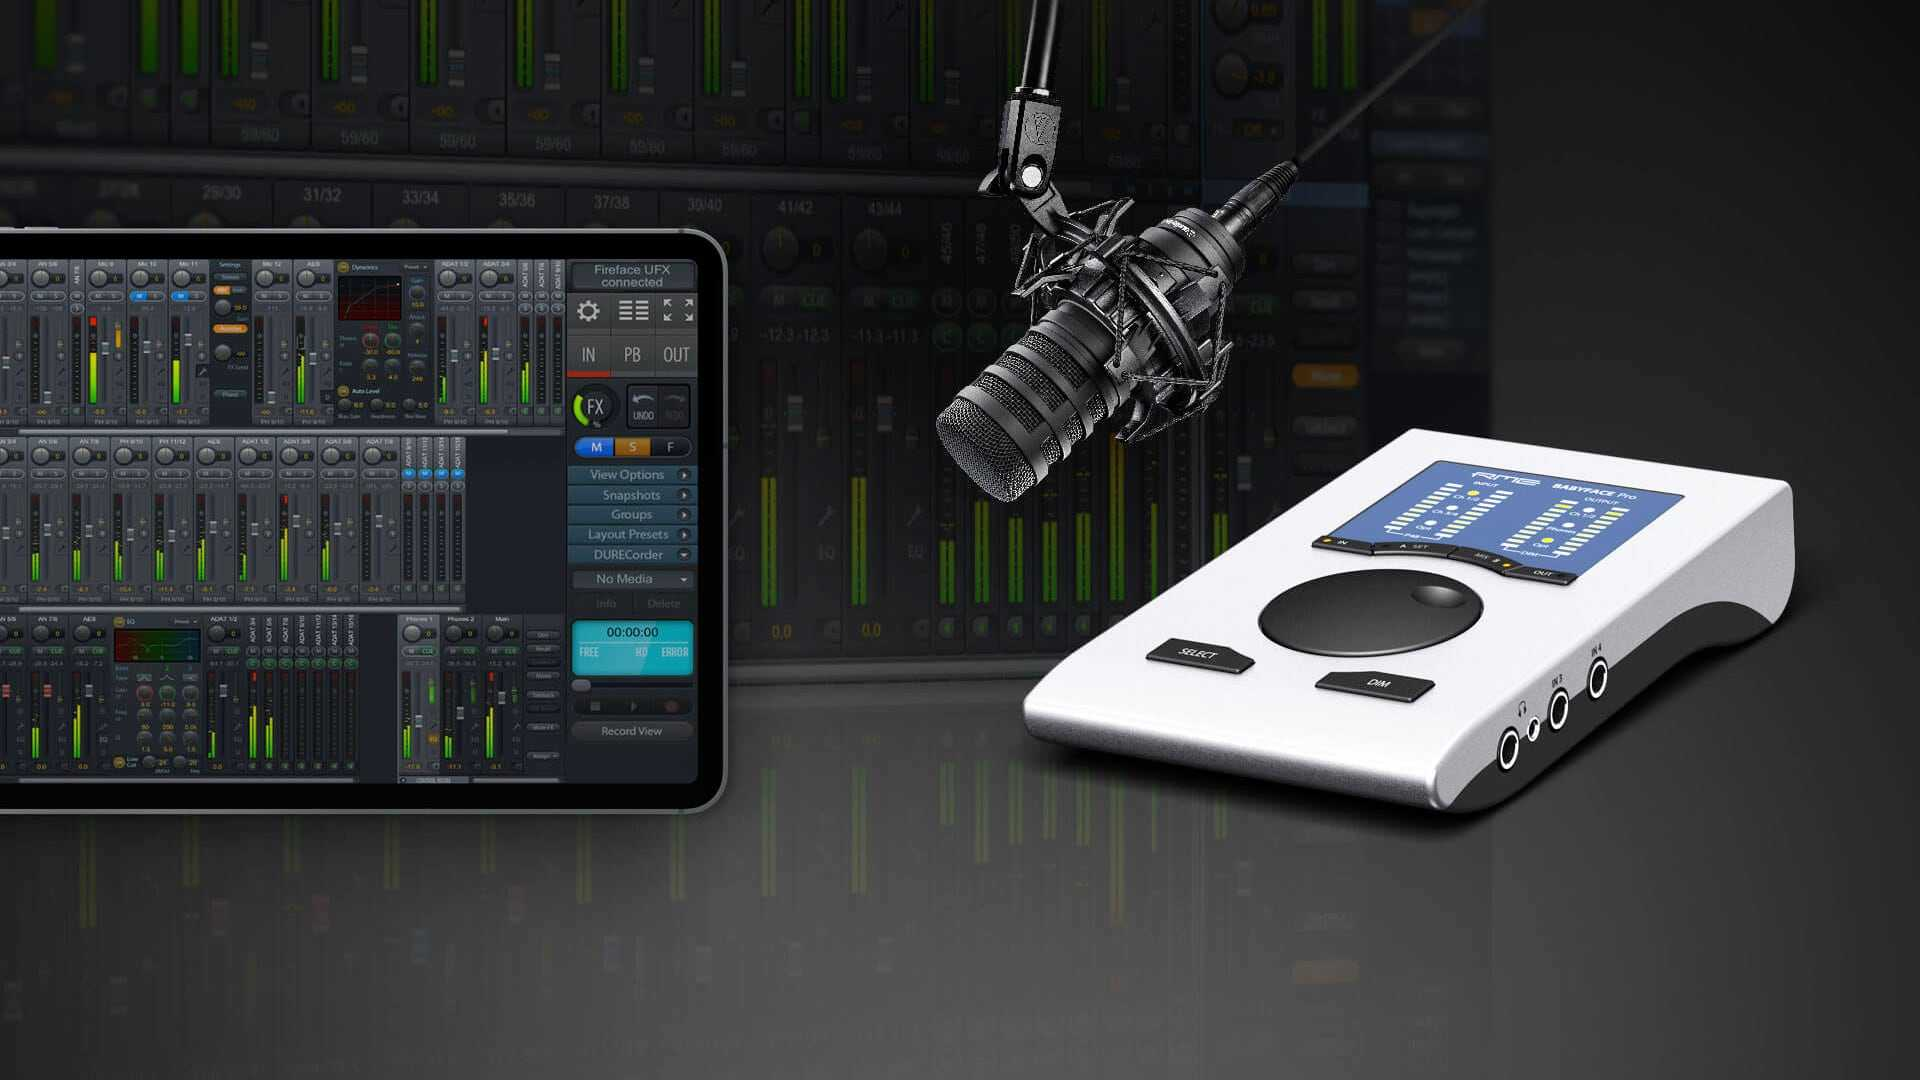 RME Audio Podcast Bundle